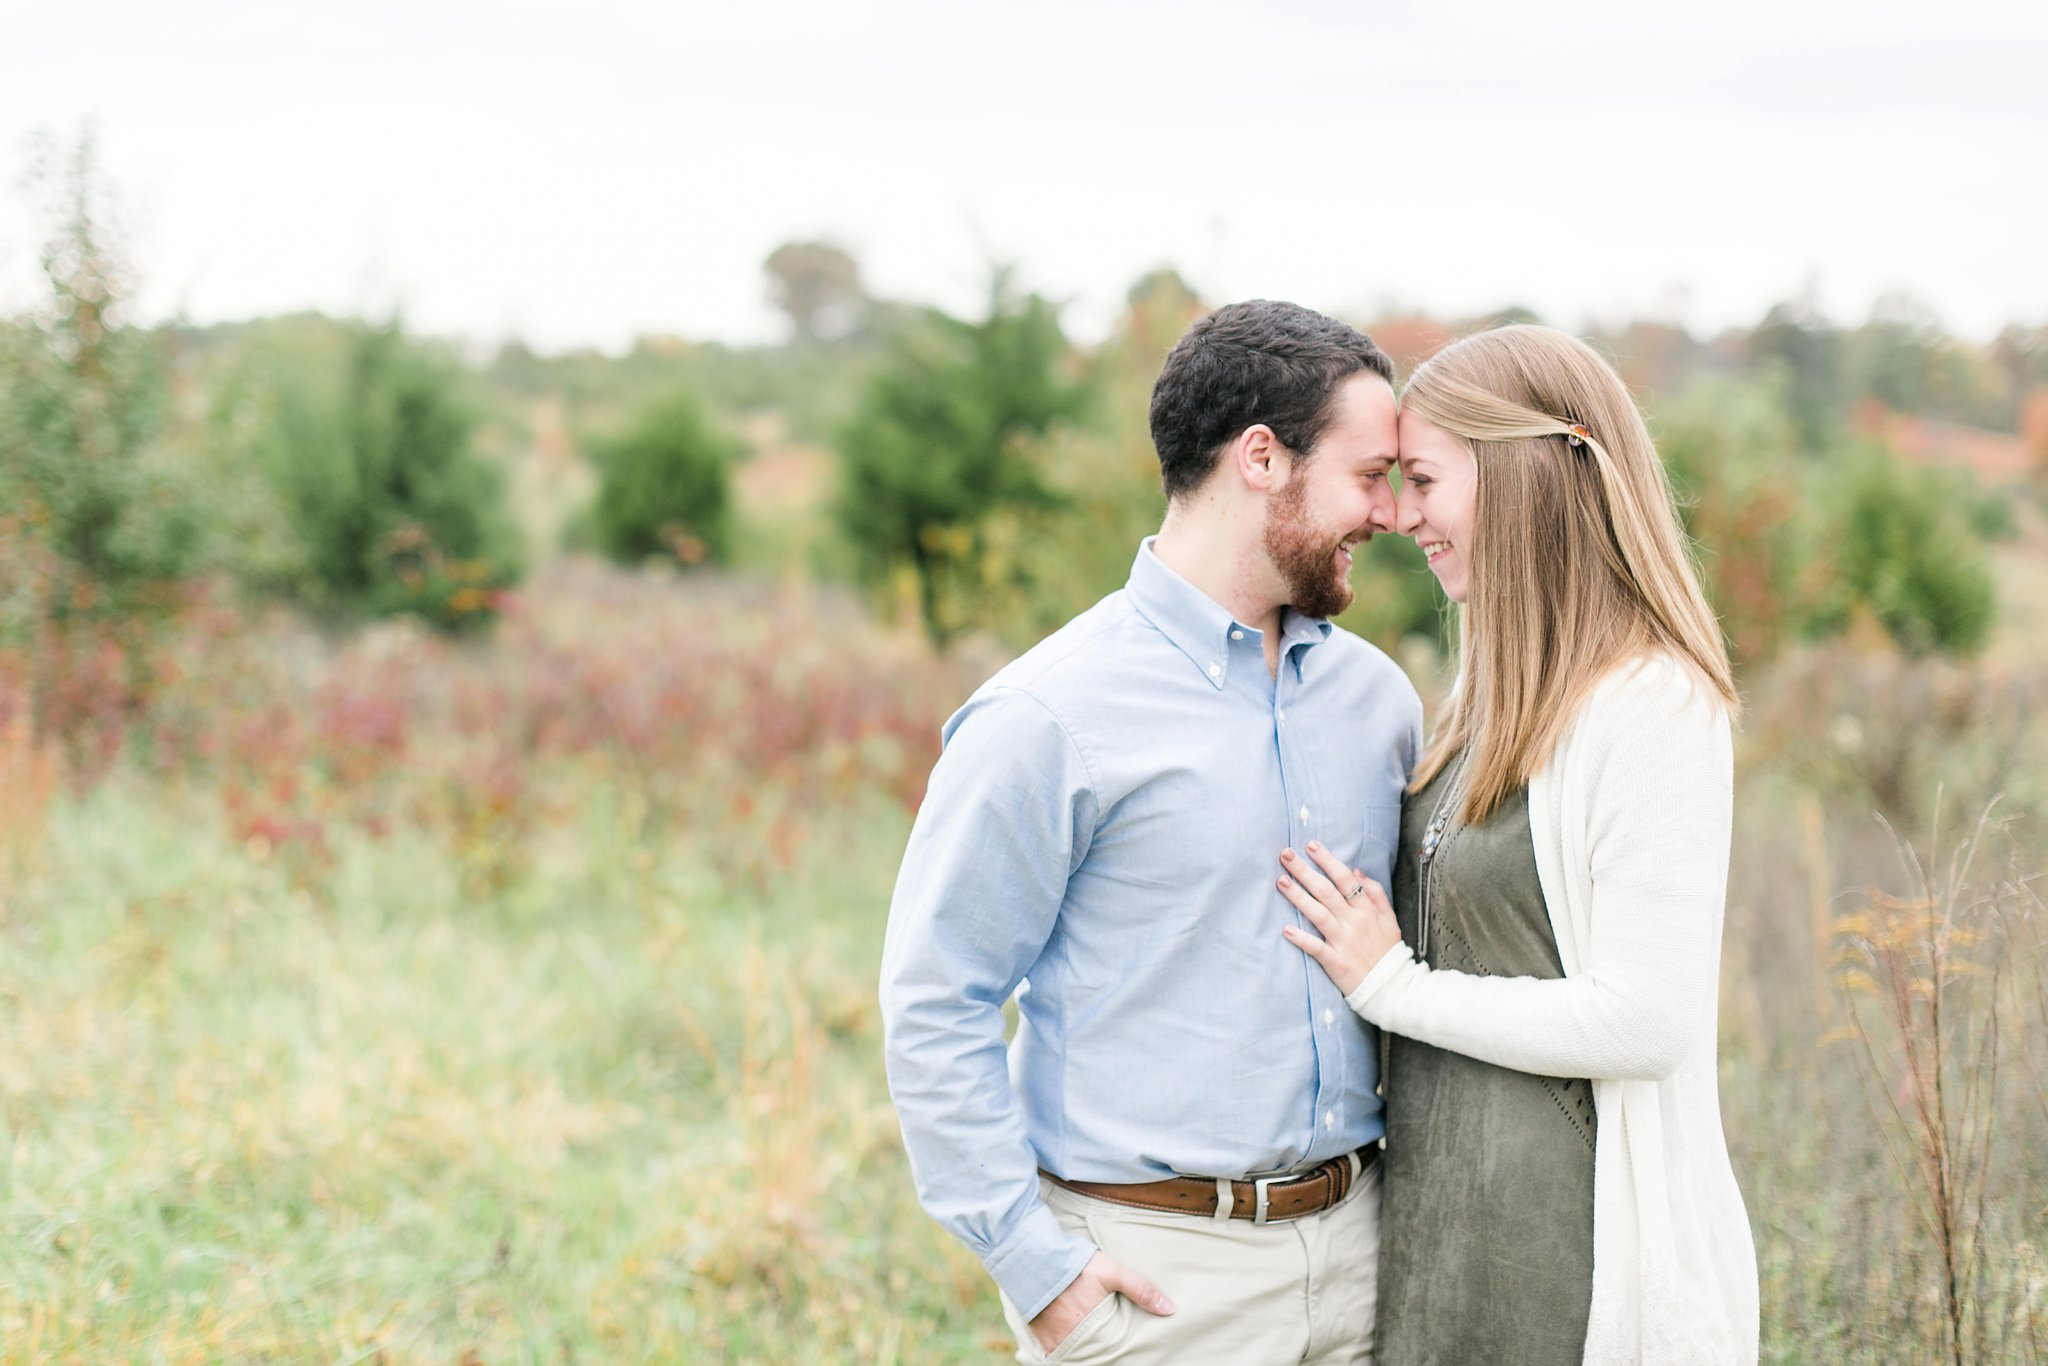 Portrait Photography Leesburg VA | Adam & Danielle | A Rustic Fall Shoot At 48 Fields